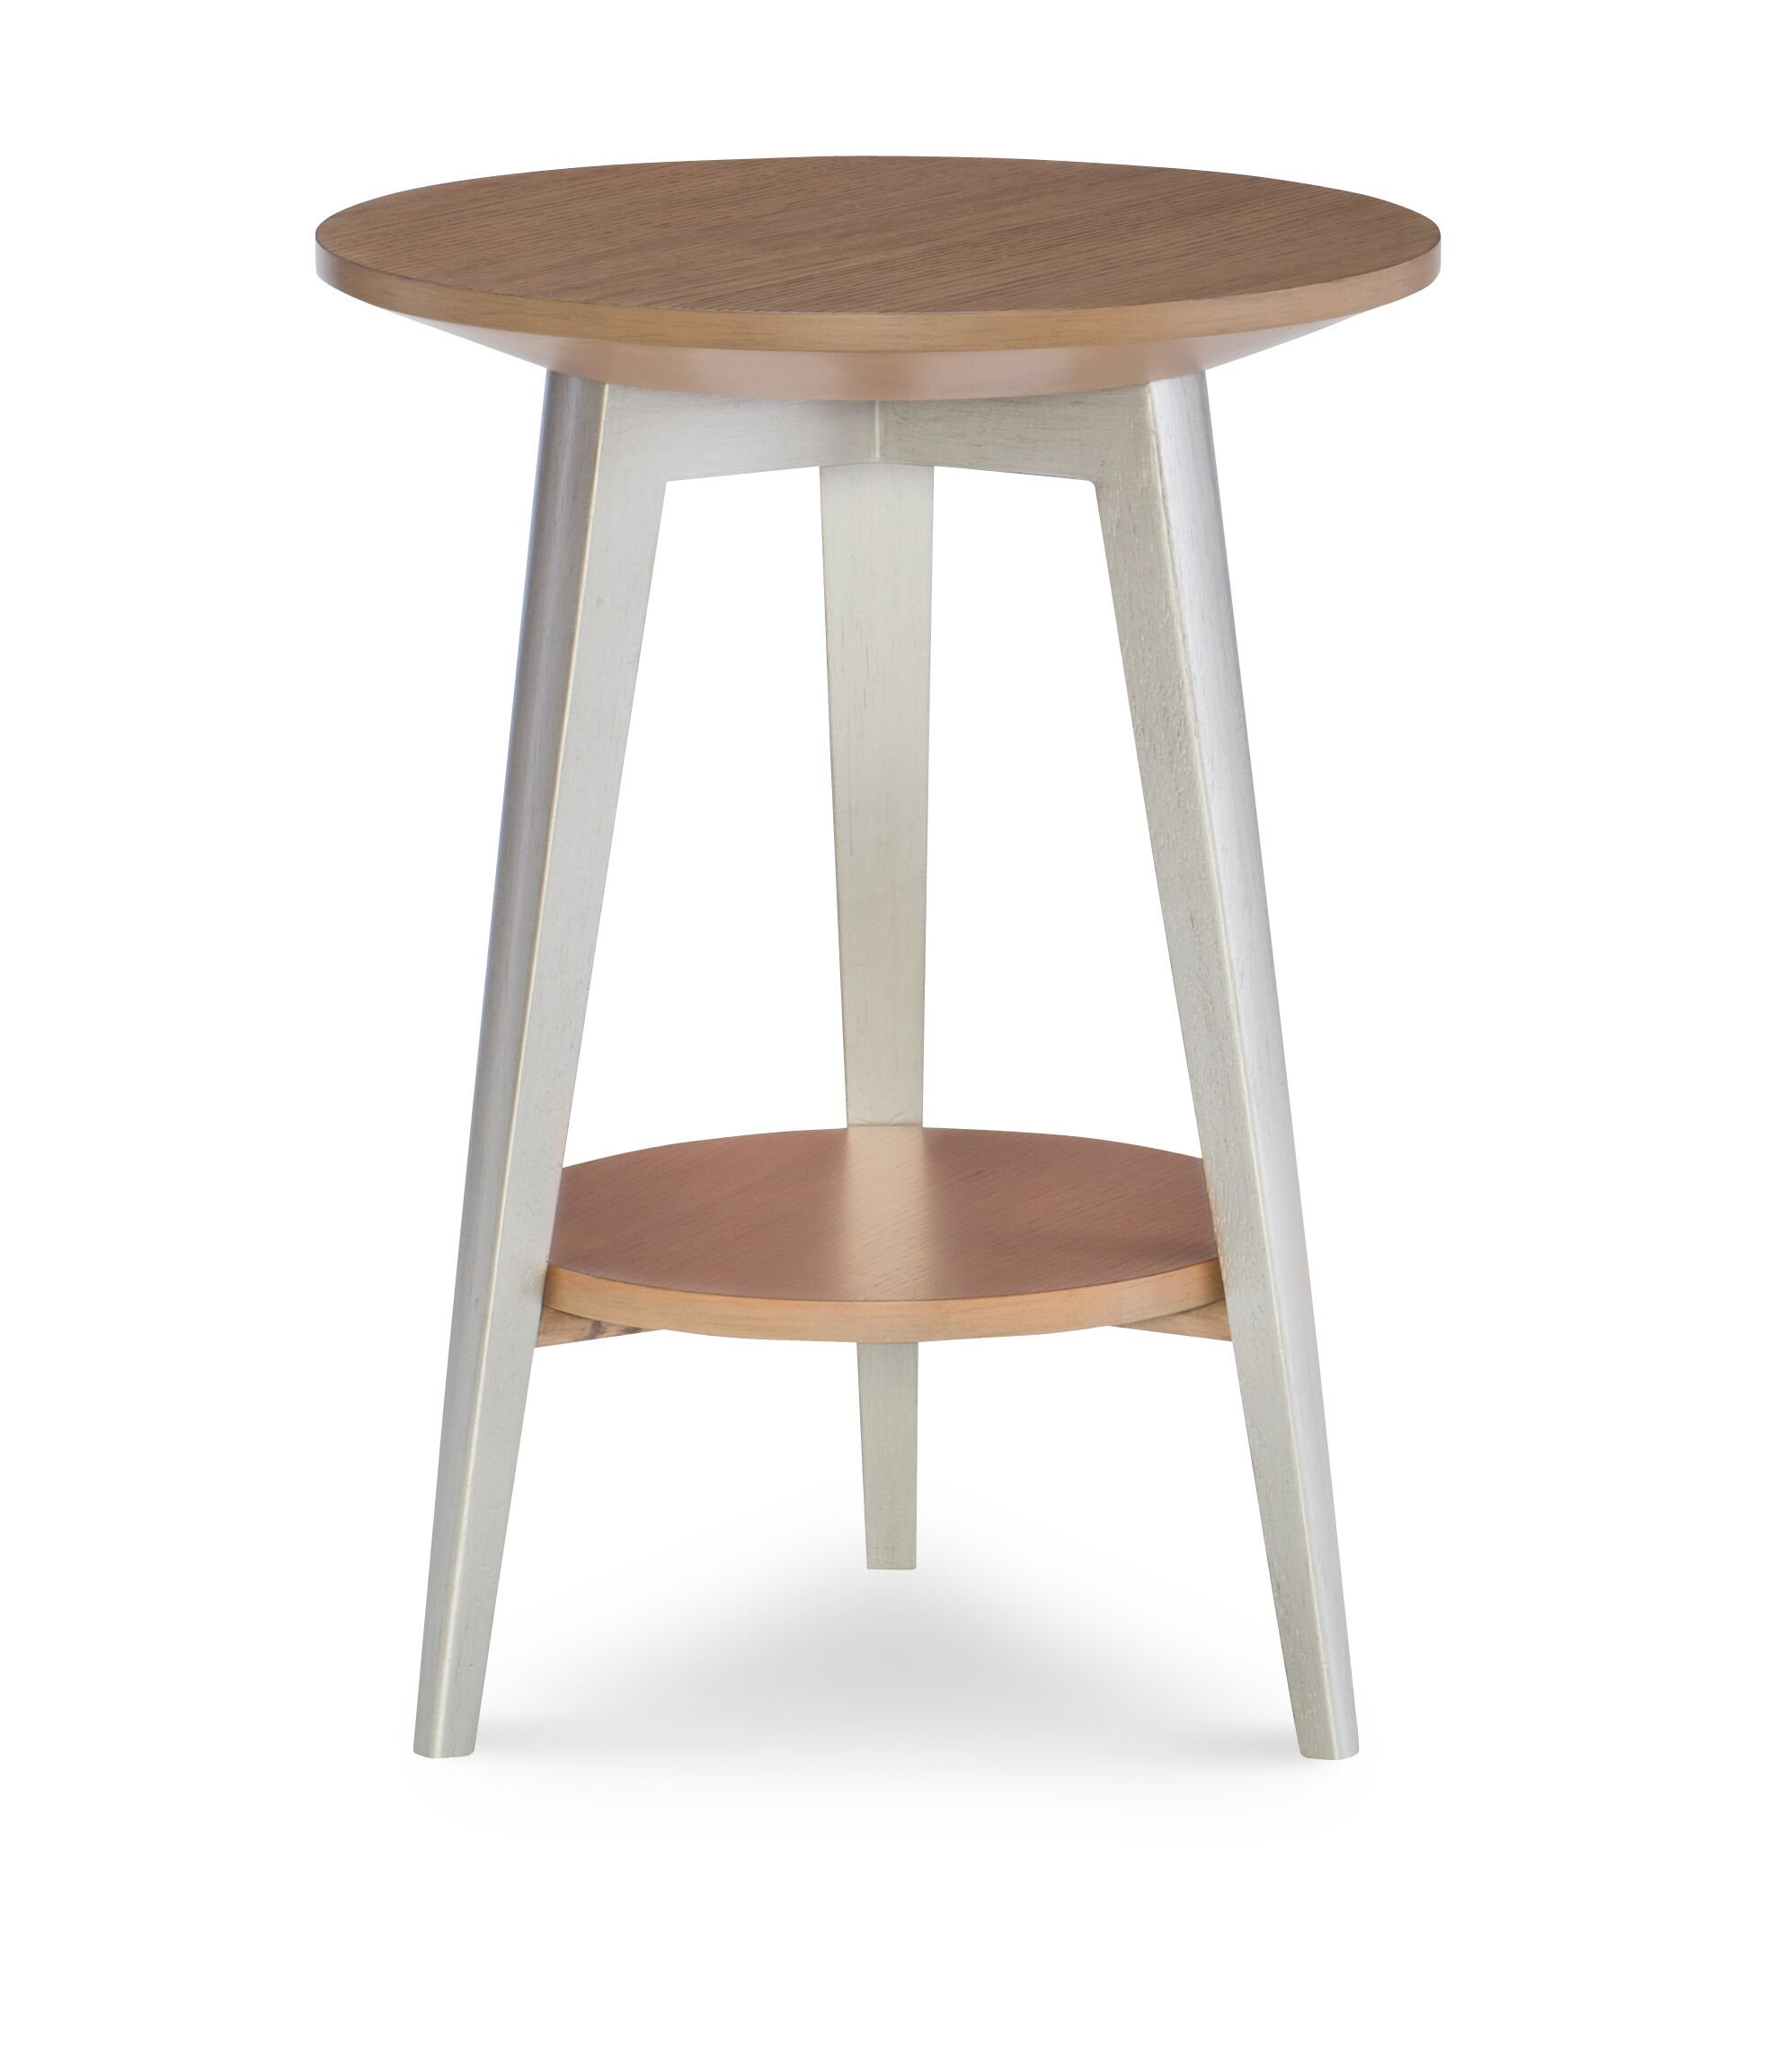 Hygge End Table